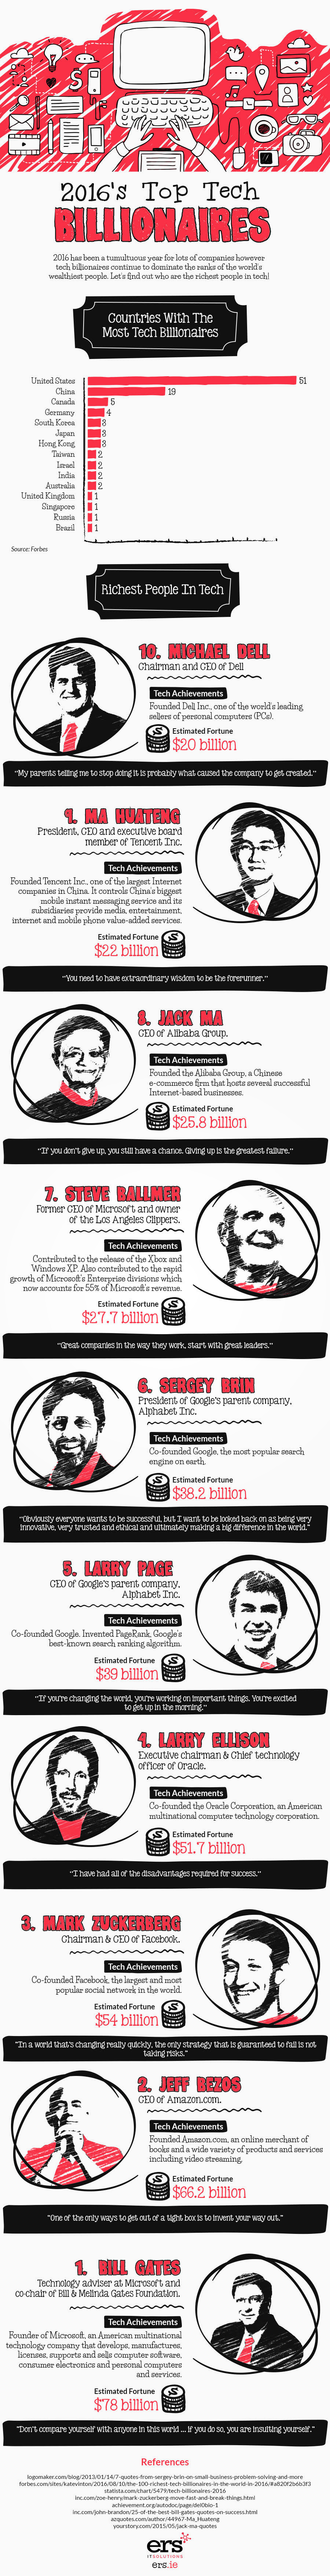 1478284584_2016-top-ten-billionaires-infographic-1